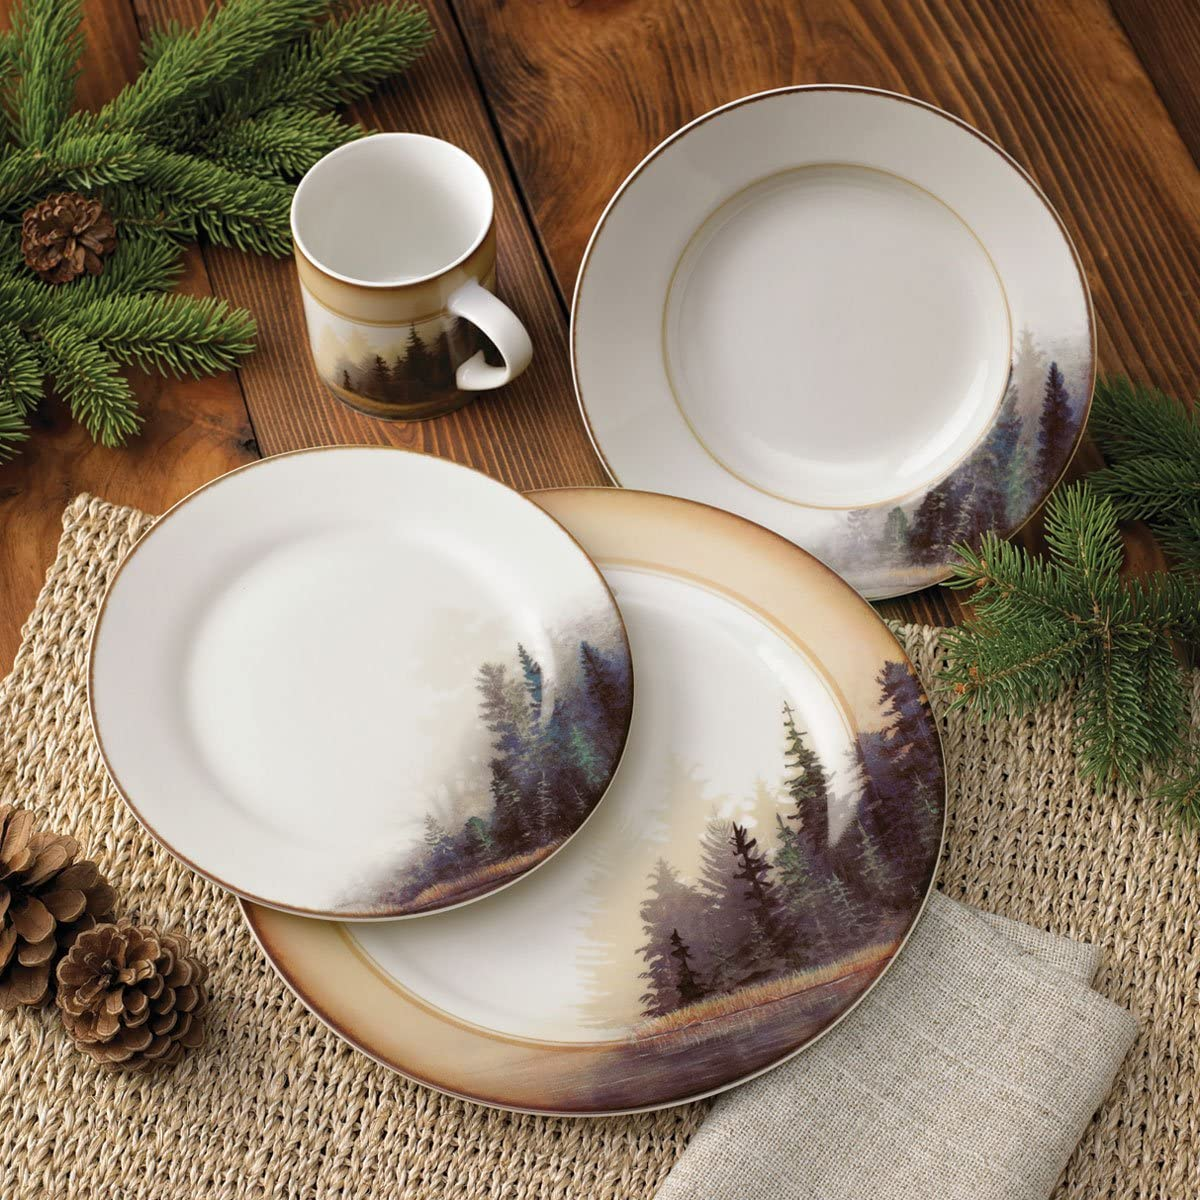 Misty Forest Cabin Dinnerware Set - 16 Pcs - Cabin Dining Tableware